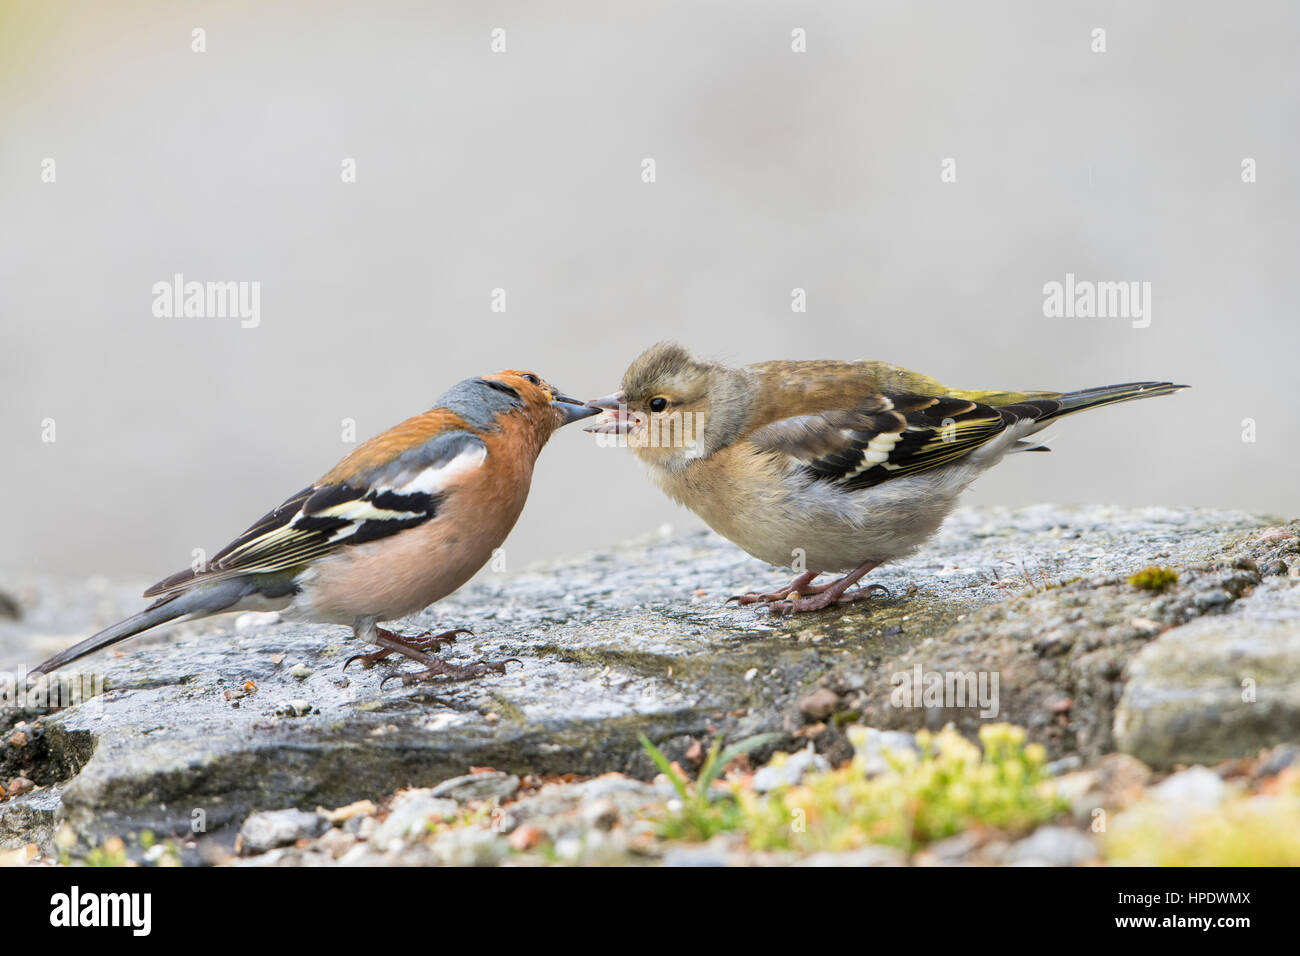 An adult male Chaffinch feeds a recently fledged young bird, Ardnamurchan, Scotland, UK - Stock Image